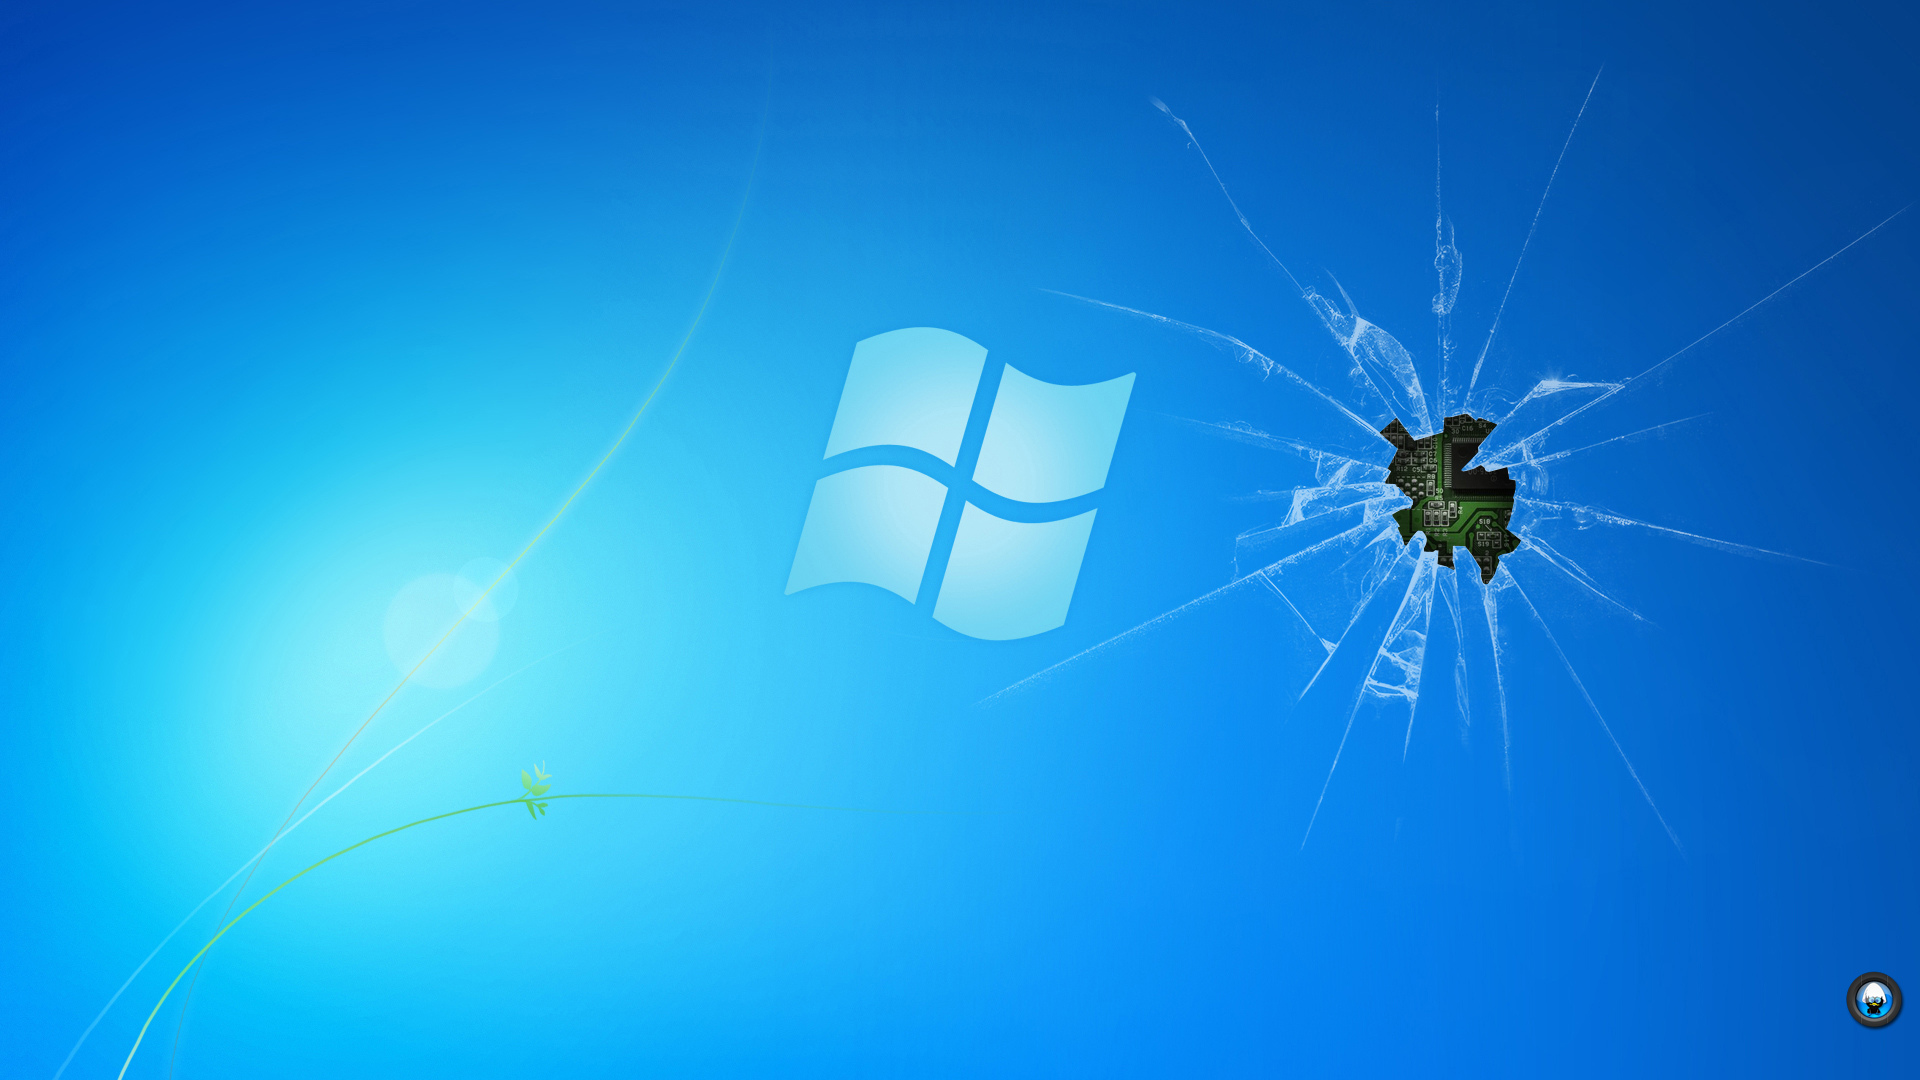 Cracked-Screen-Background-free-Pixels-Talk-%C3%97-Broken-wallpaper-wpc9203881